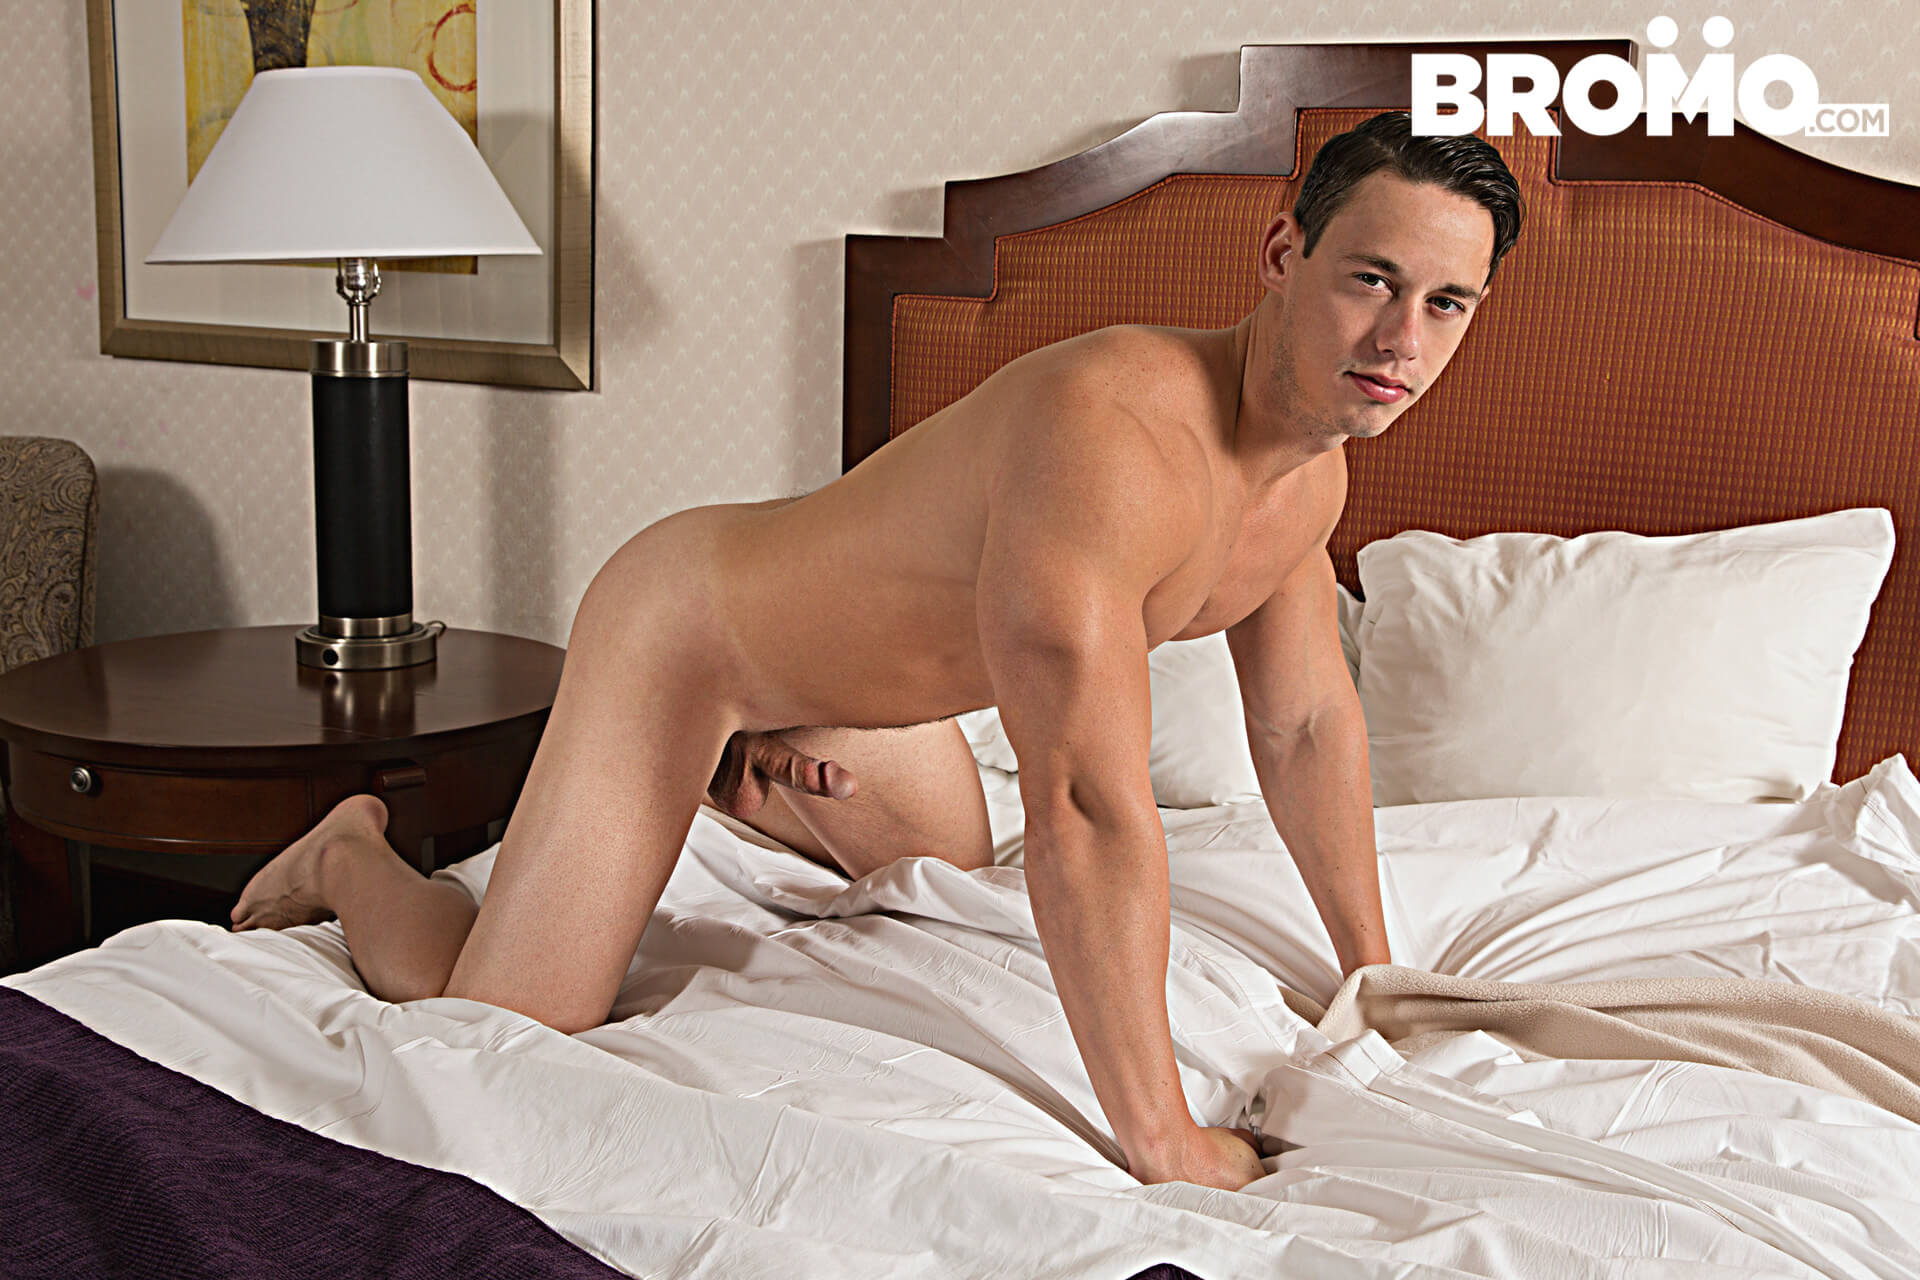 bromo str8 bitch part 2 aspen tobias gay porn blog image 2